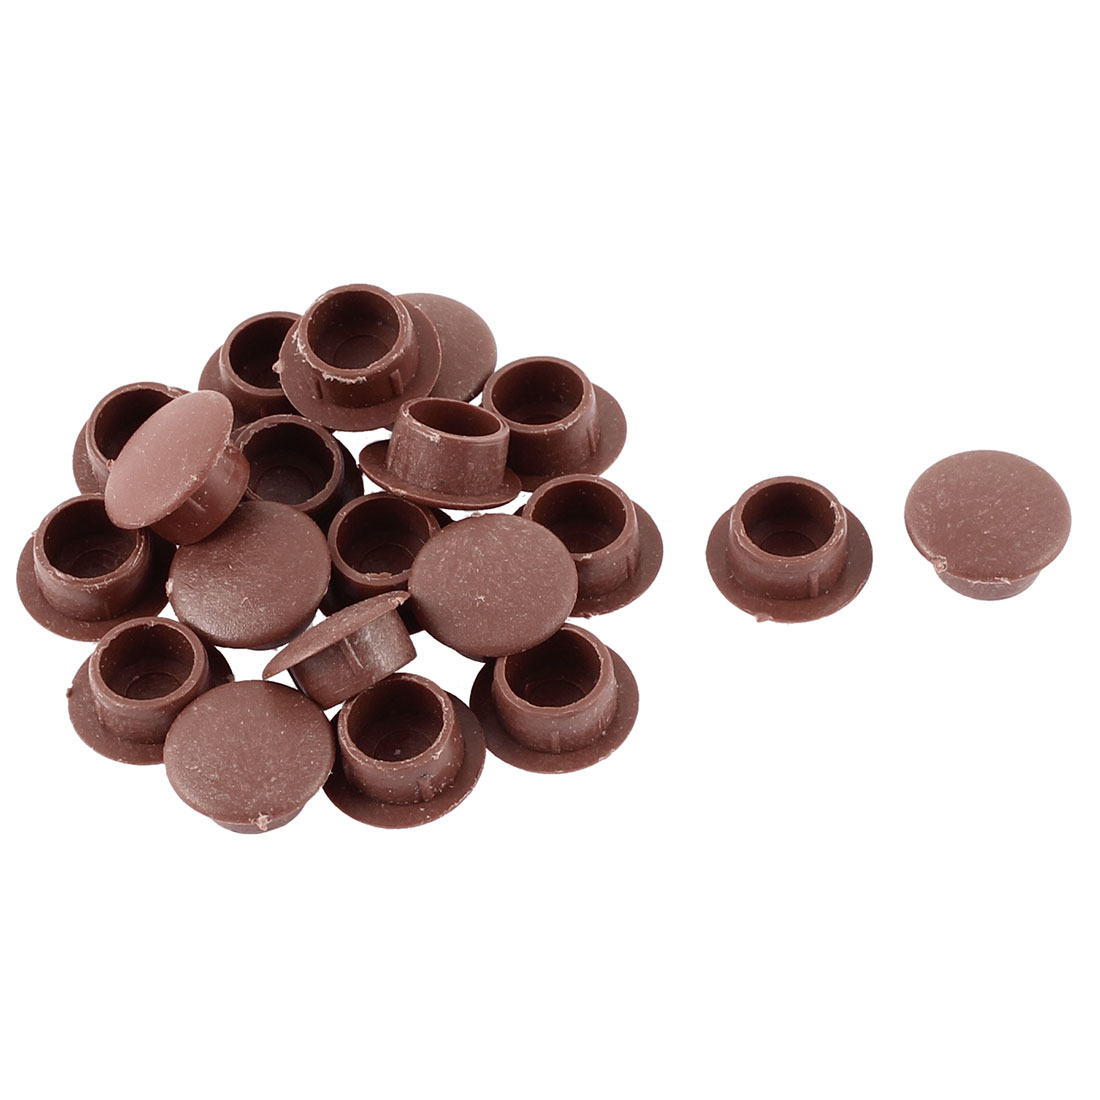 Furniture Table Locking Hole Tidying Button Covers Cap Tube Insert 10mm Dia 20pcs